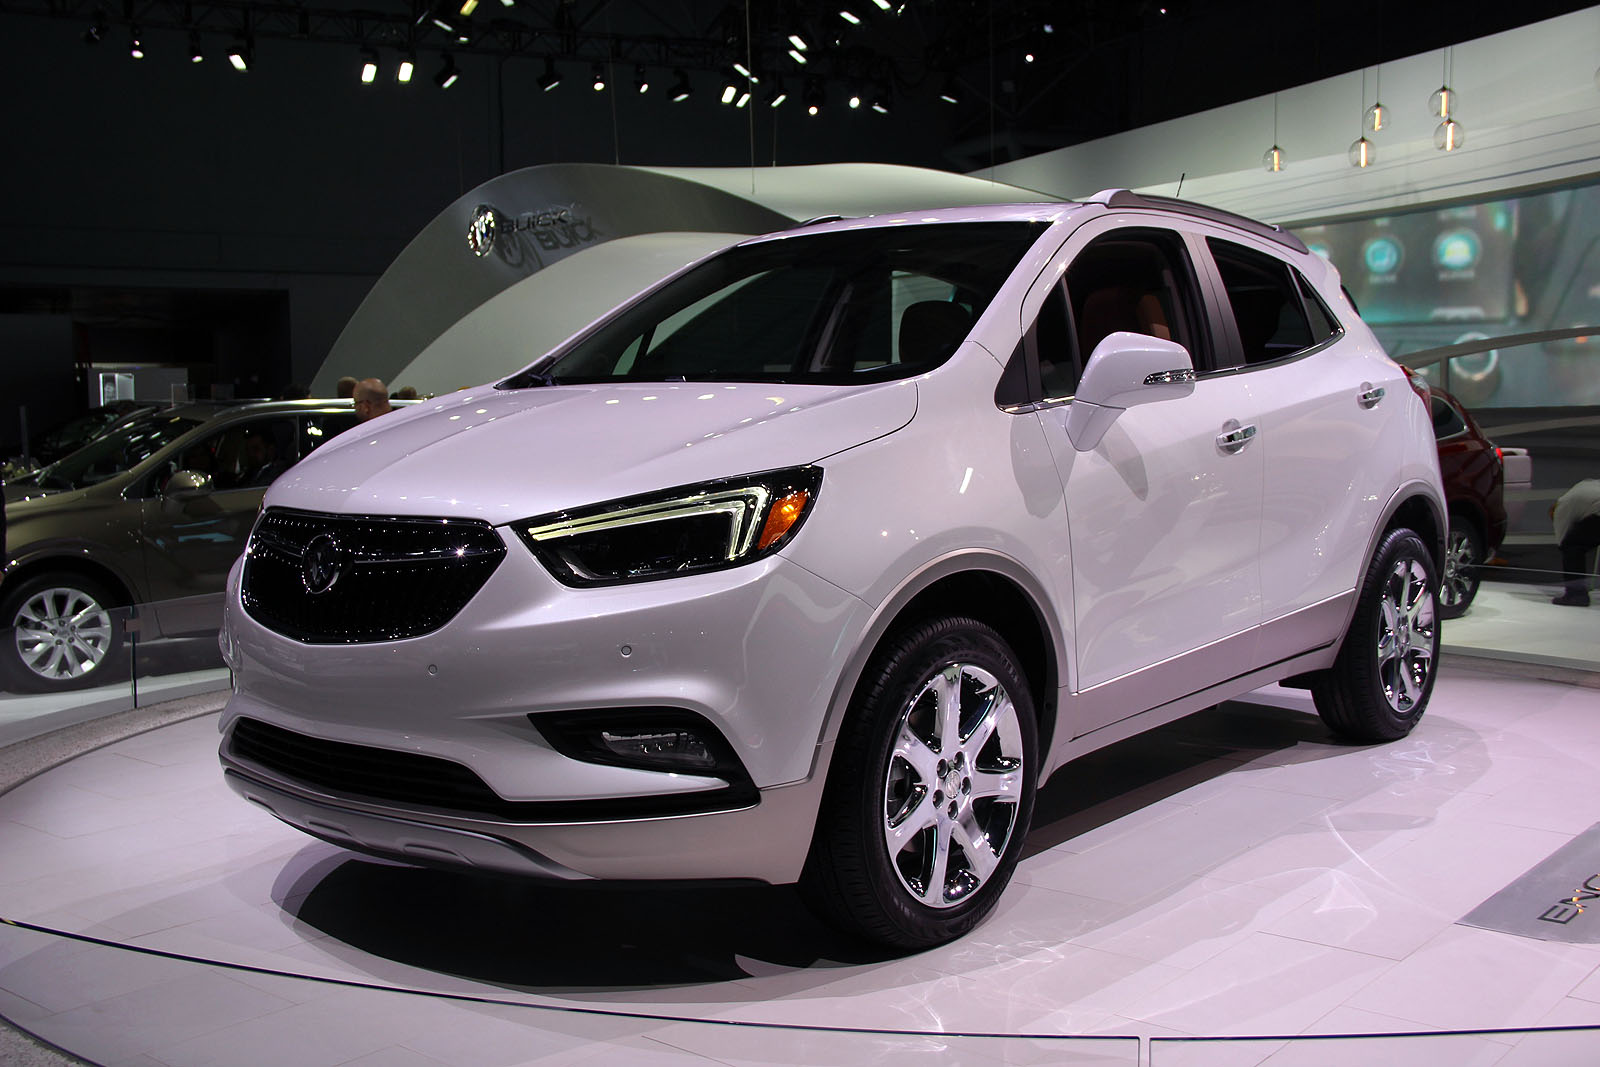 100 buick encore 2017 white this petite buick is quietly killing its competition the. Black Bedroom Furniture Sets. Home Design Ideas